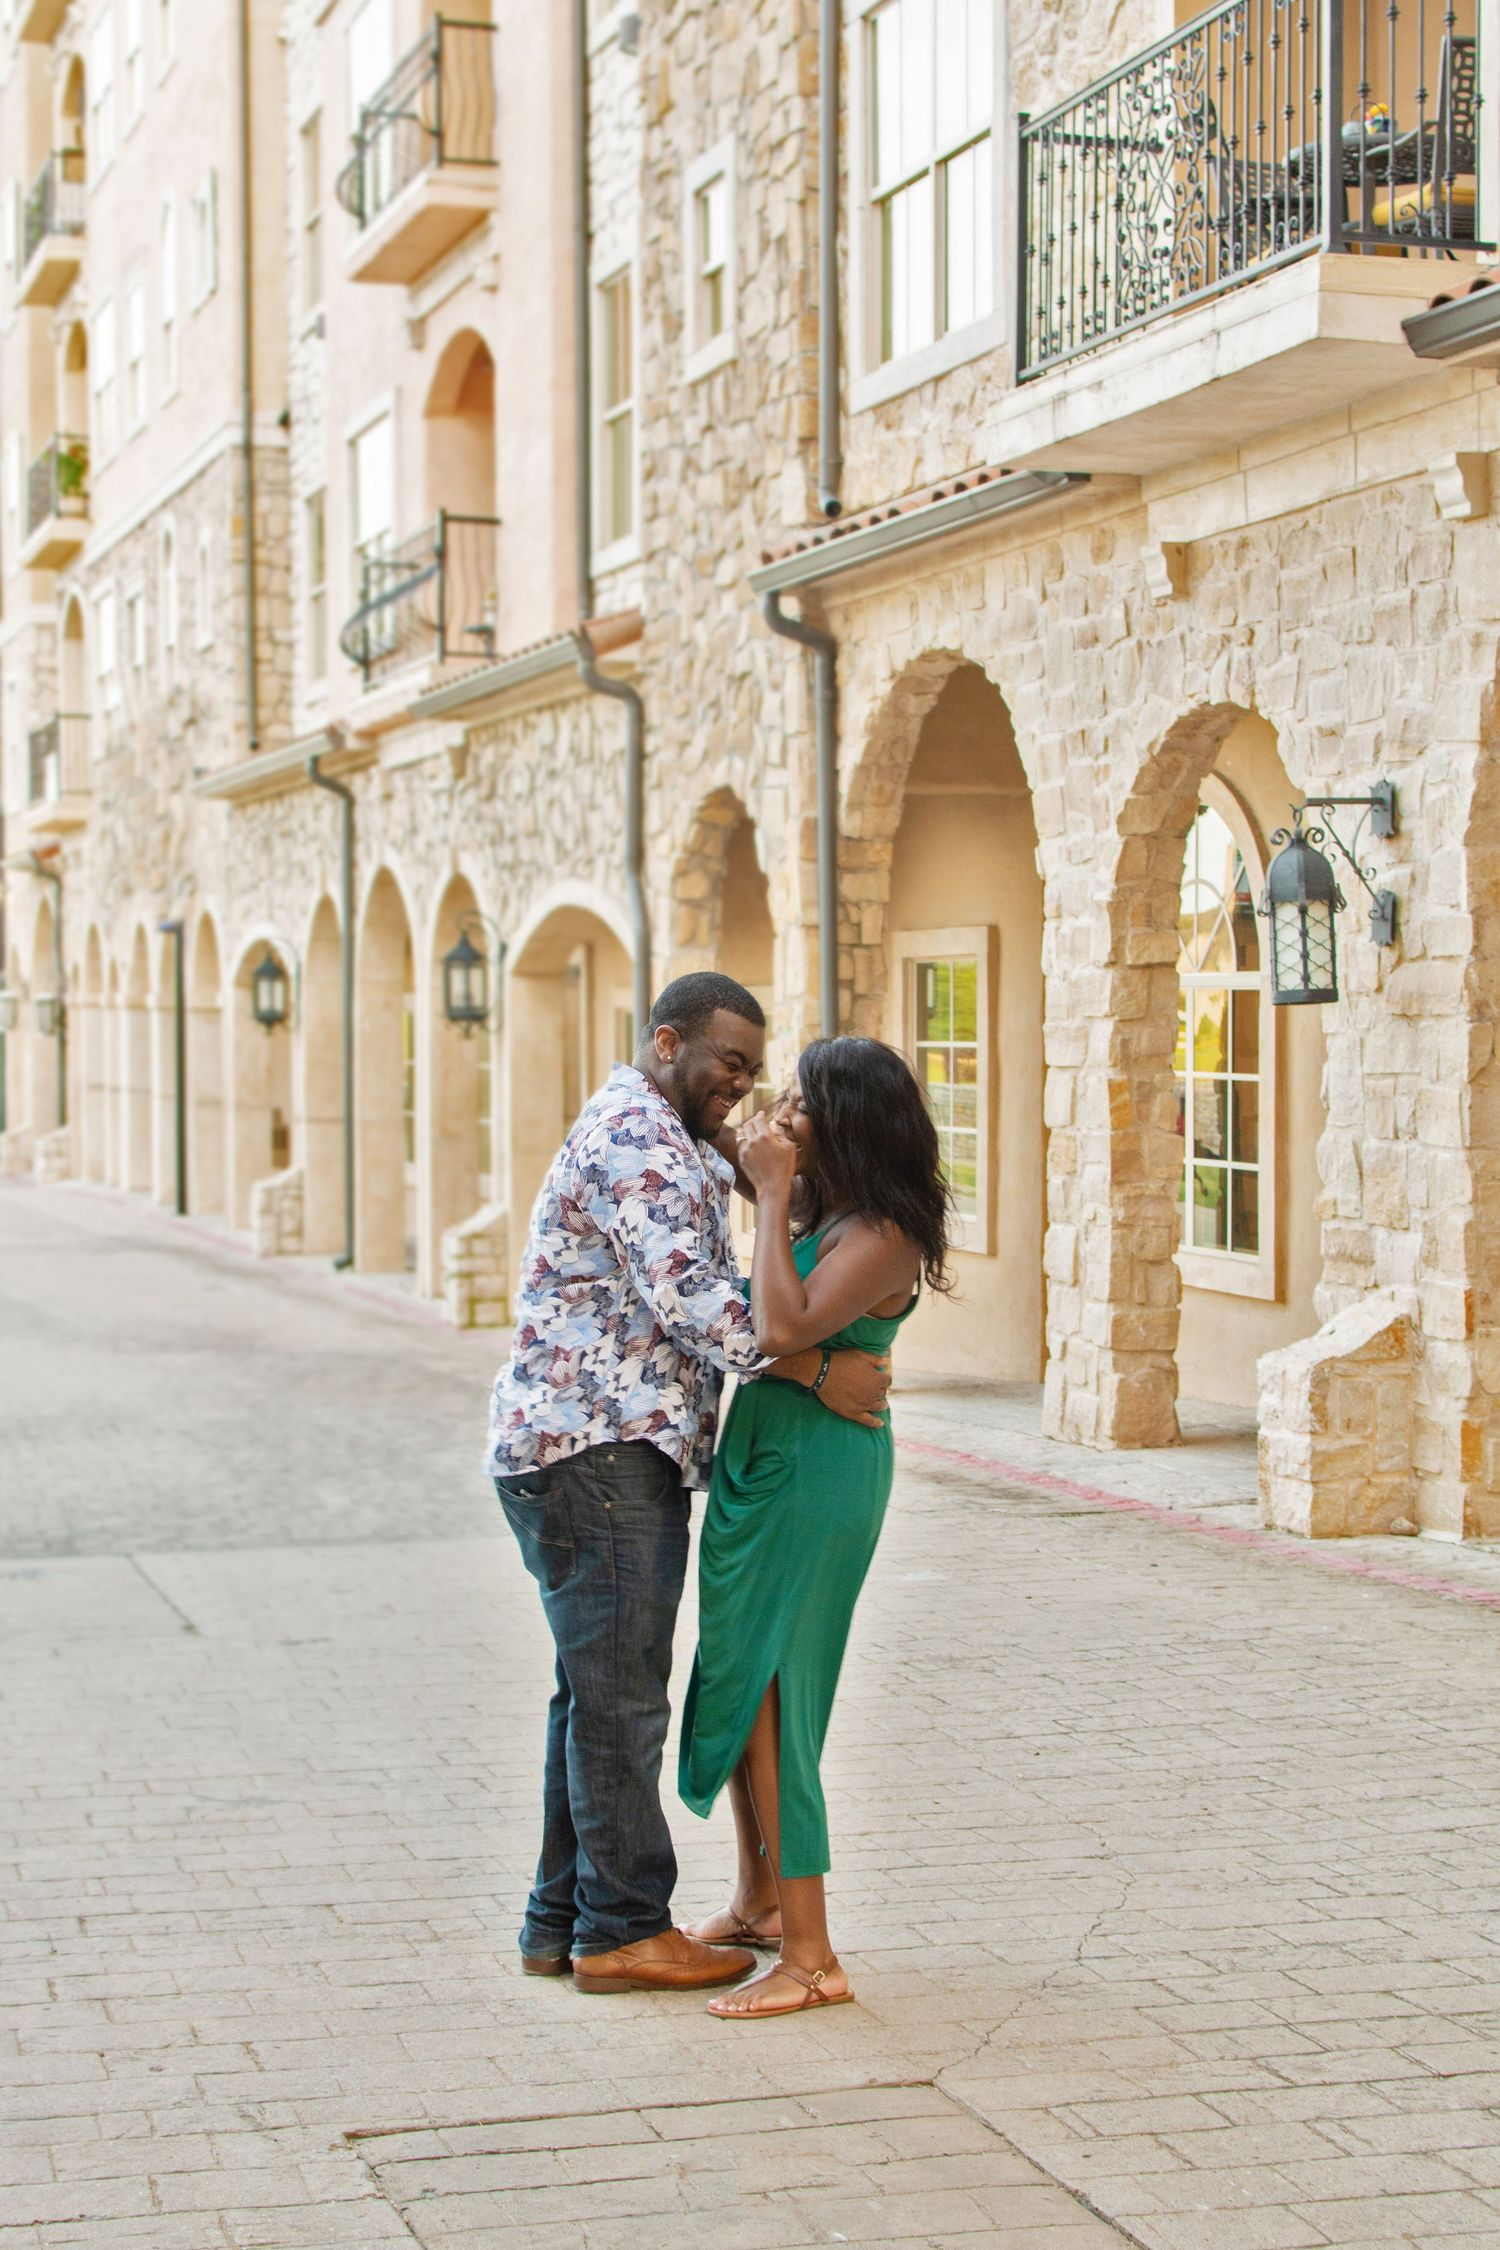 Couple dances in the street in Adriatica Village. Travel photography by award winning photographer Gernelle Nelson